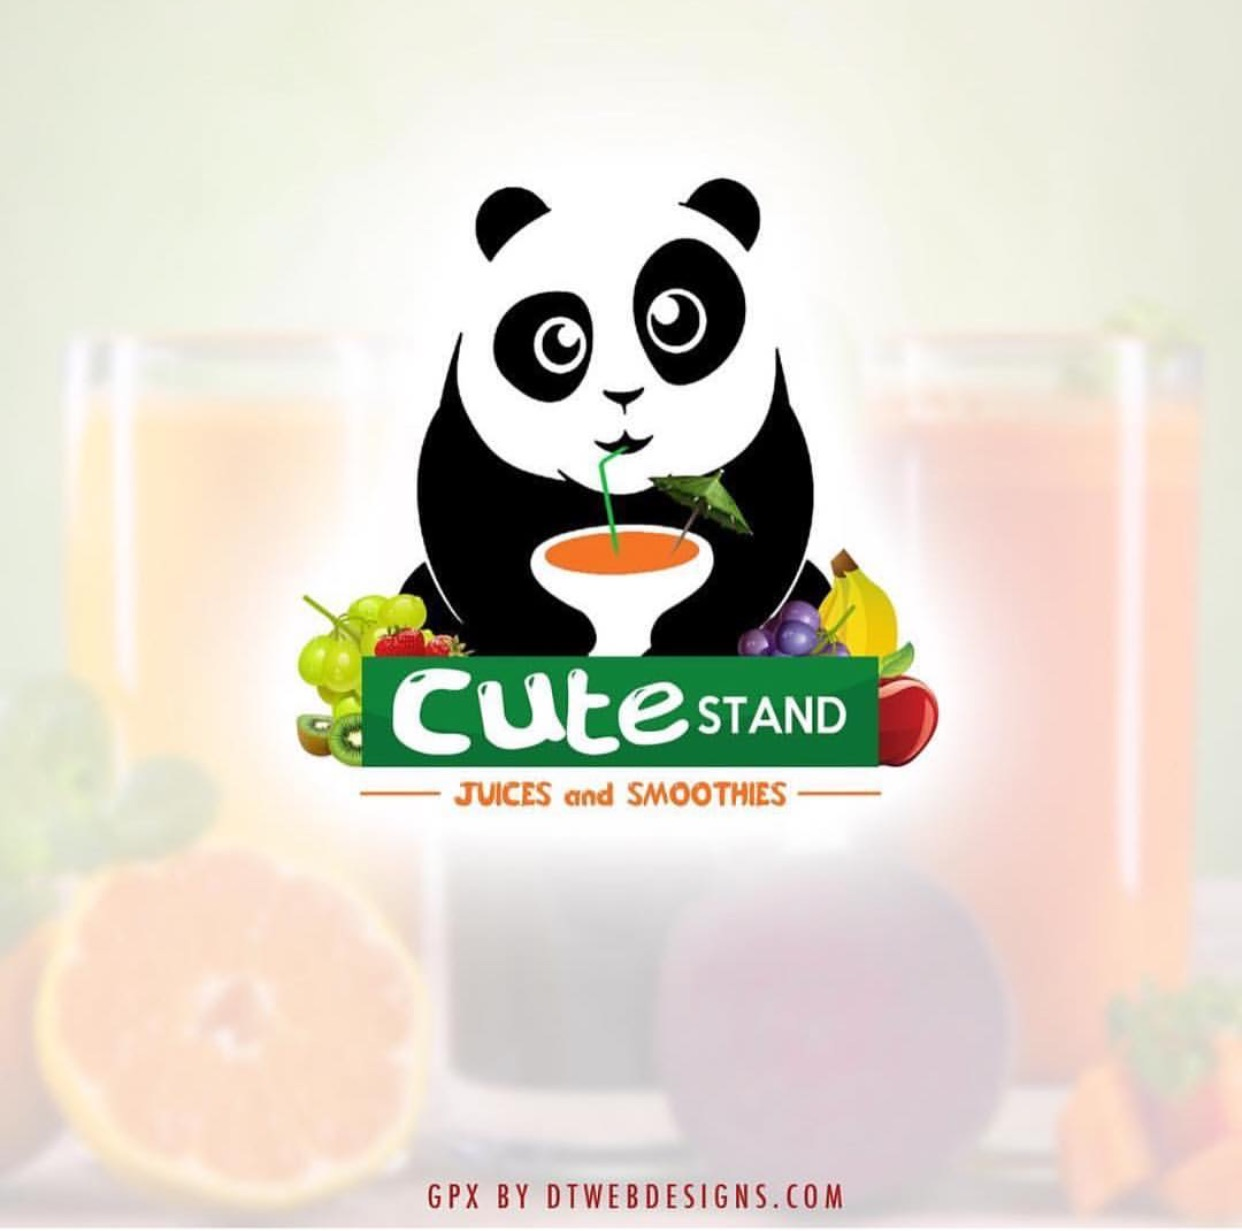 SMOOTHIE BUSINESS LOGO DESIGNS